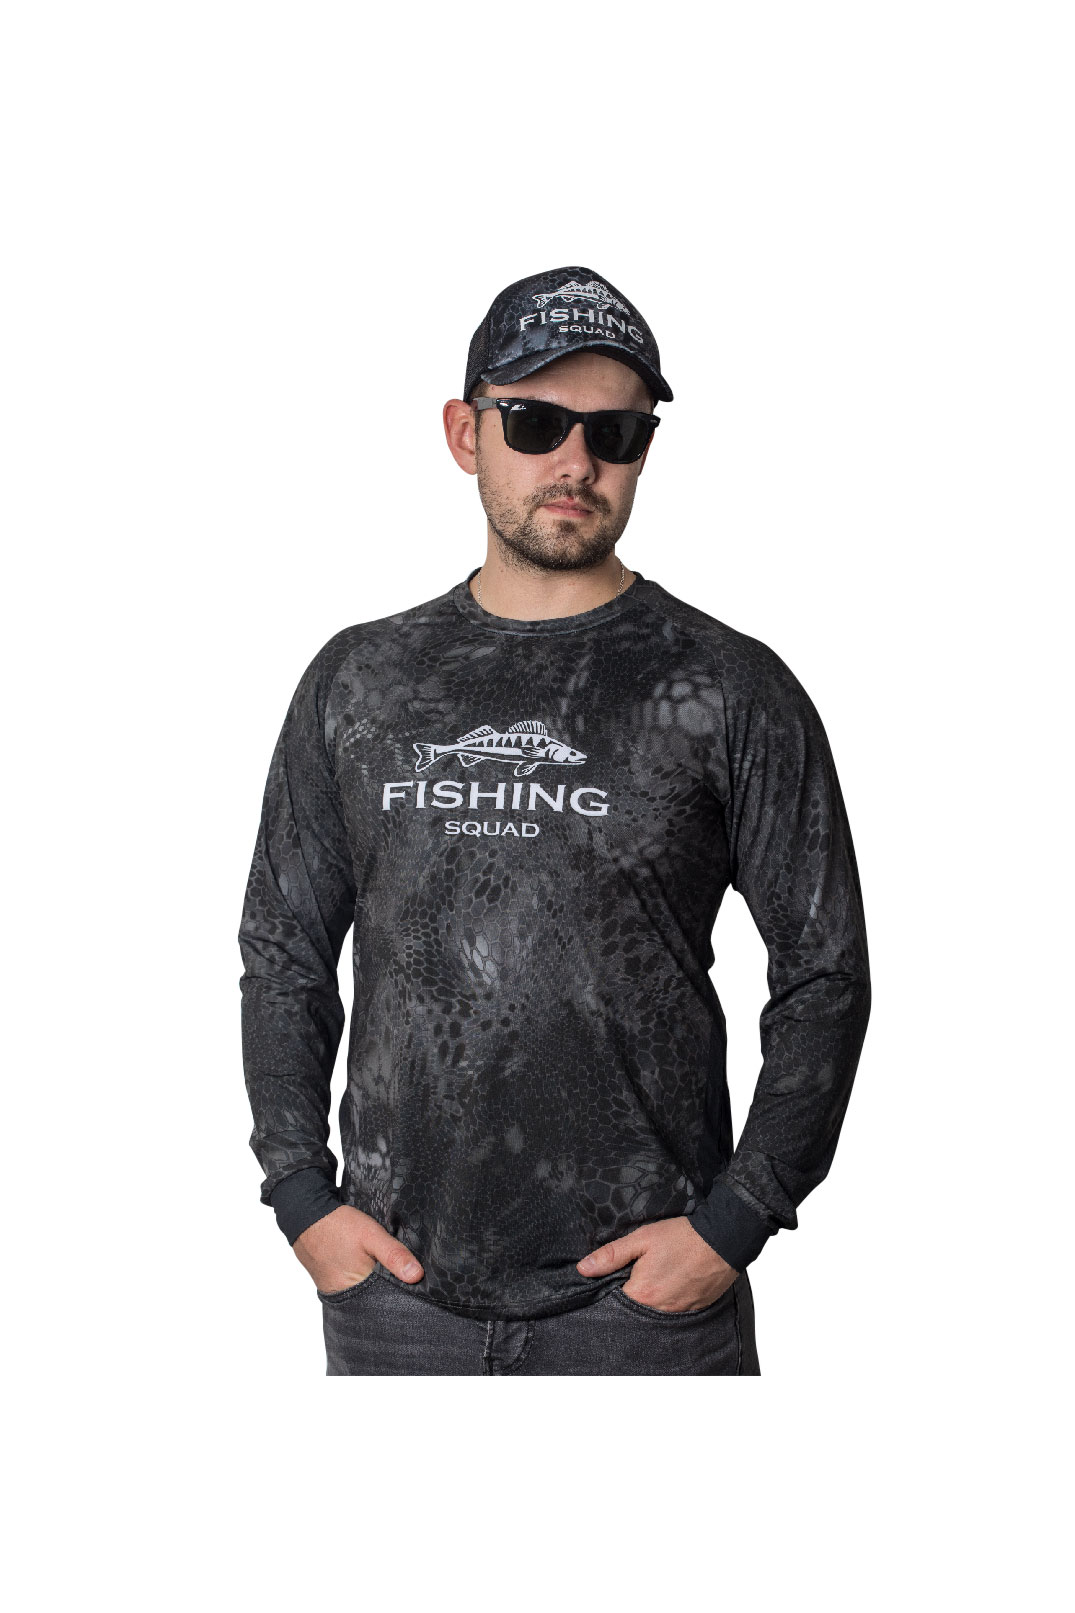 Fishingwear Reptile Skin G Fishing Jersey main